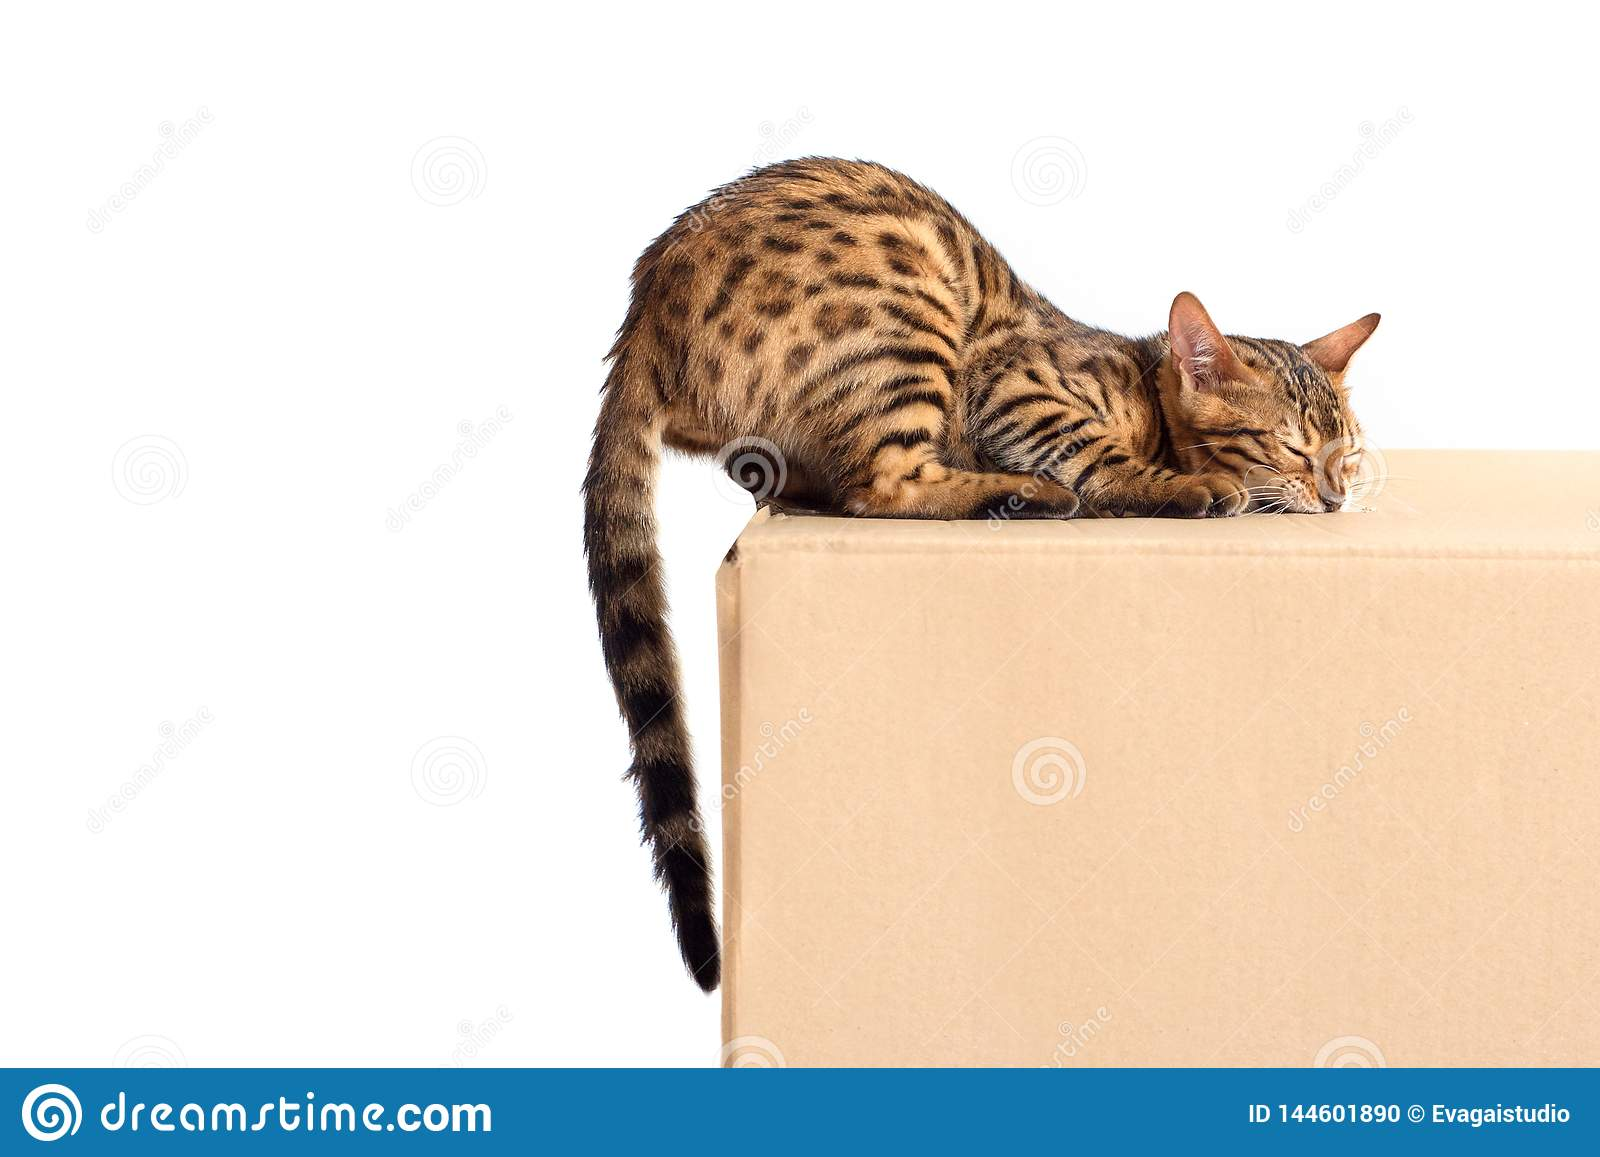 Bengal cat nibbles the box with box isolated on white background